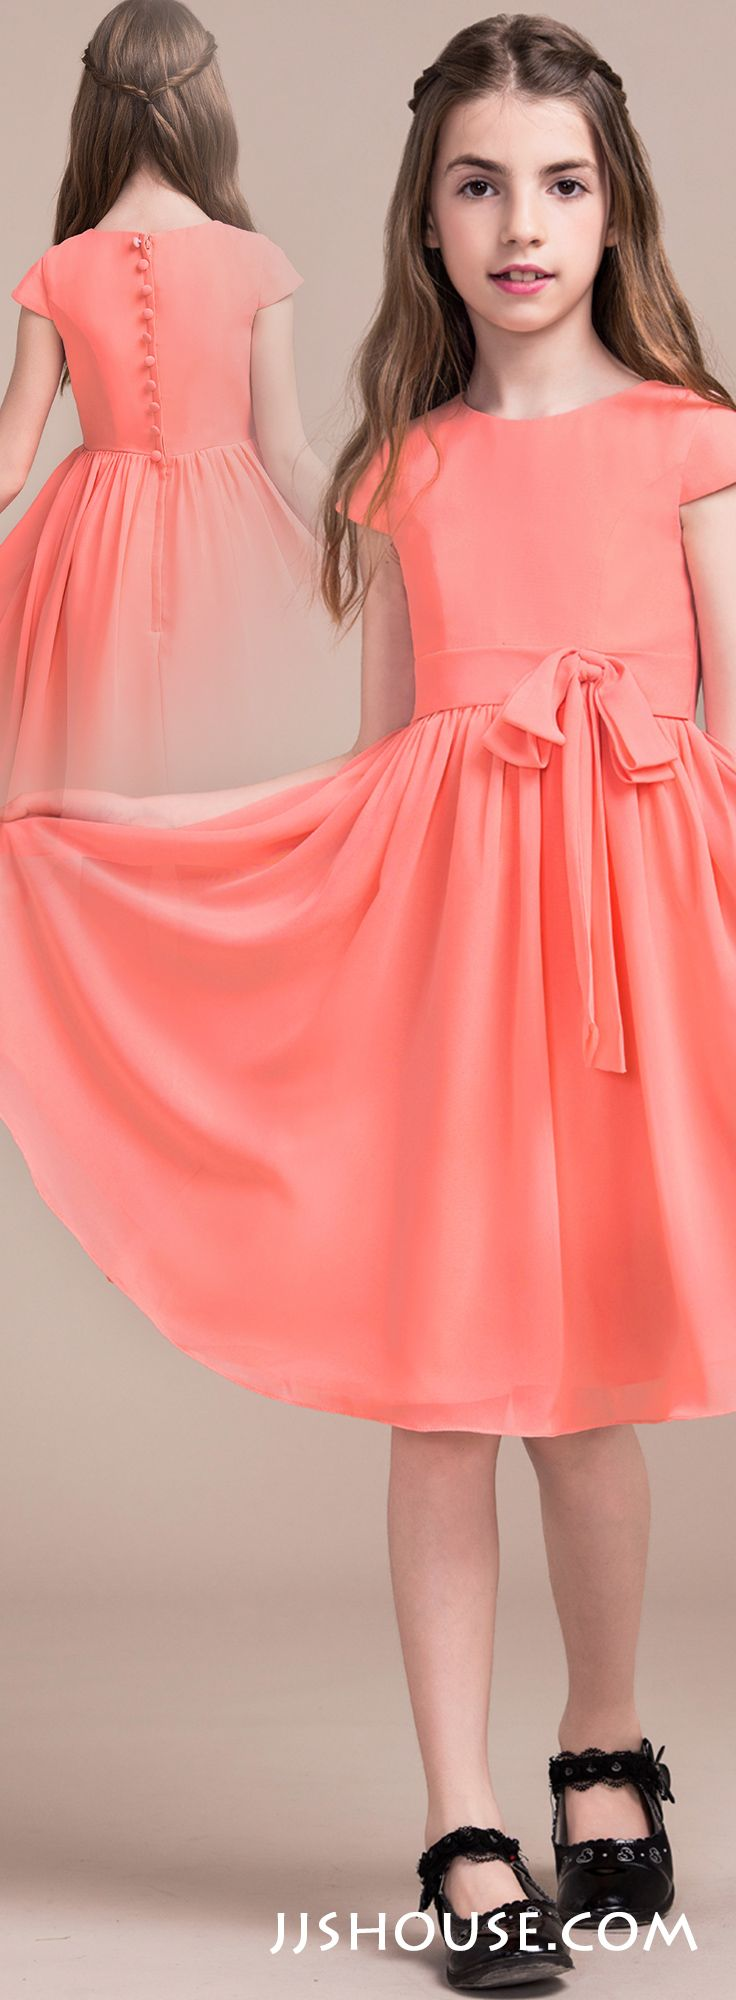 A sweet and chic look that will be perfect for any junior bridesmaid ...